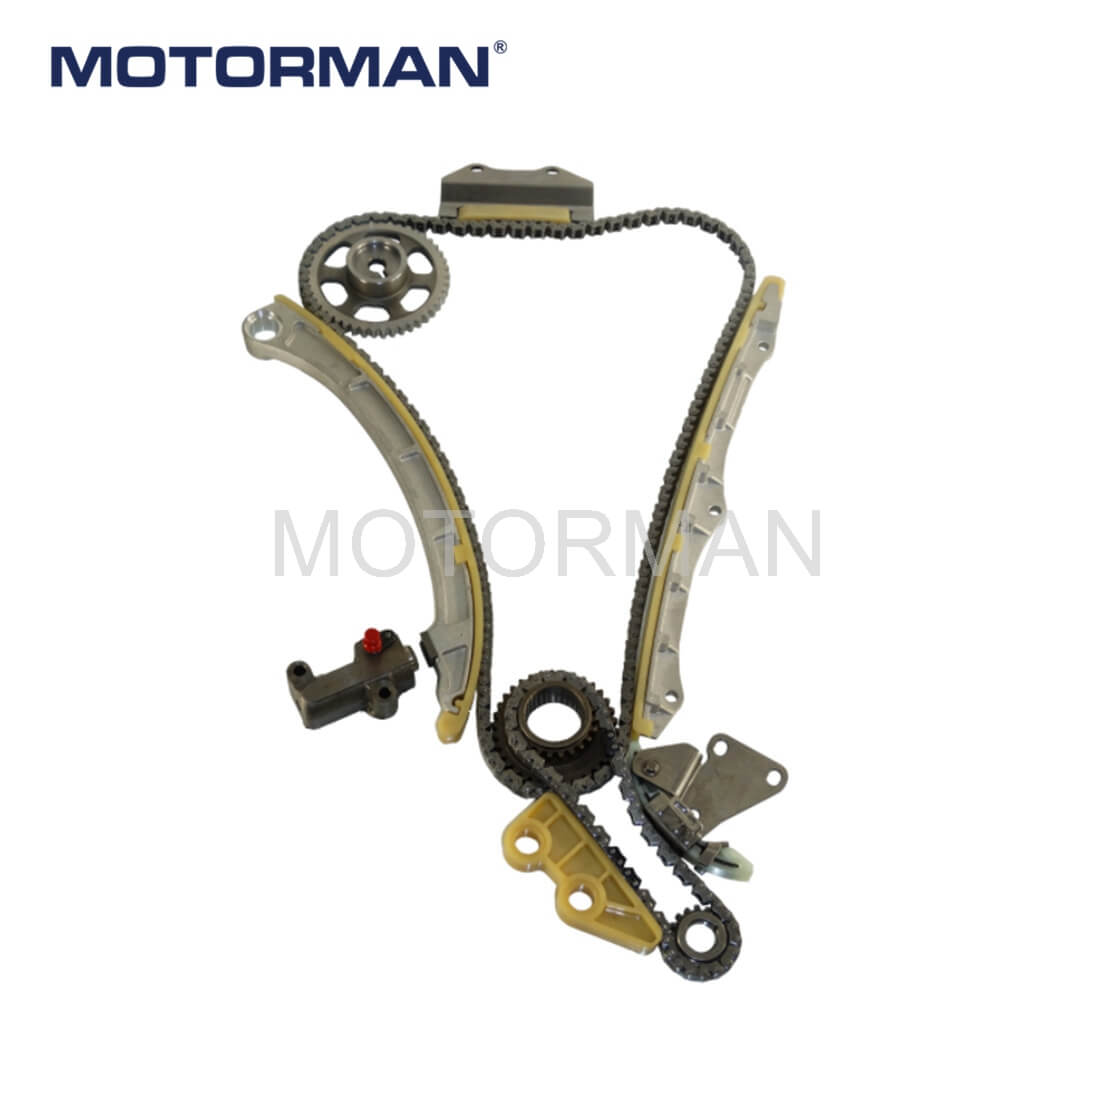 Motorman Timing Chain Kits 9-0711S